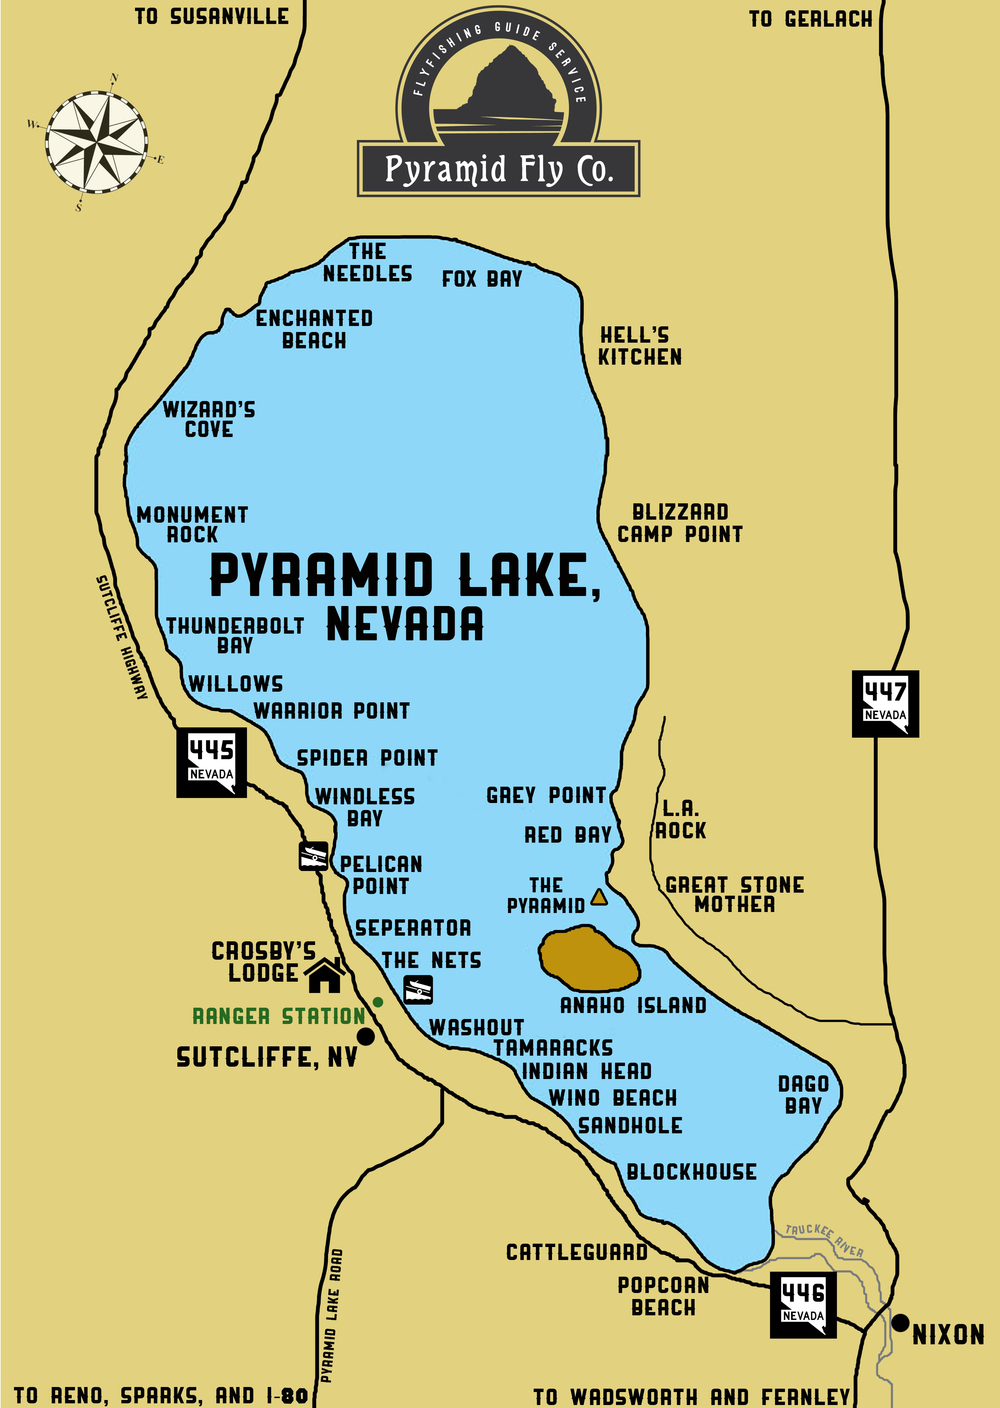 The lake pyramid fly co for Peak fishing times for today